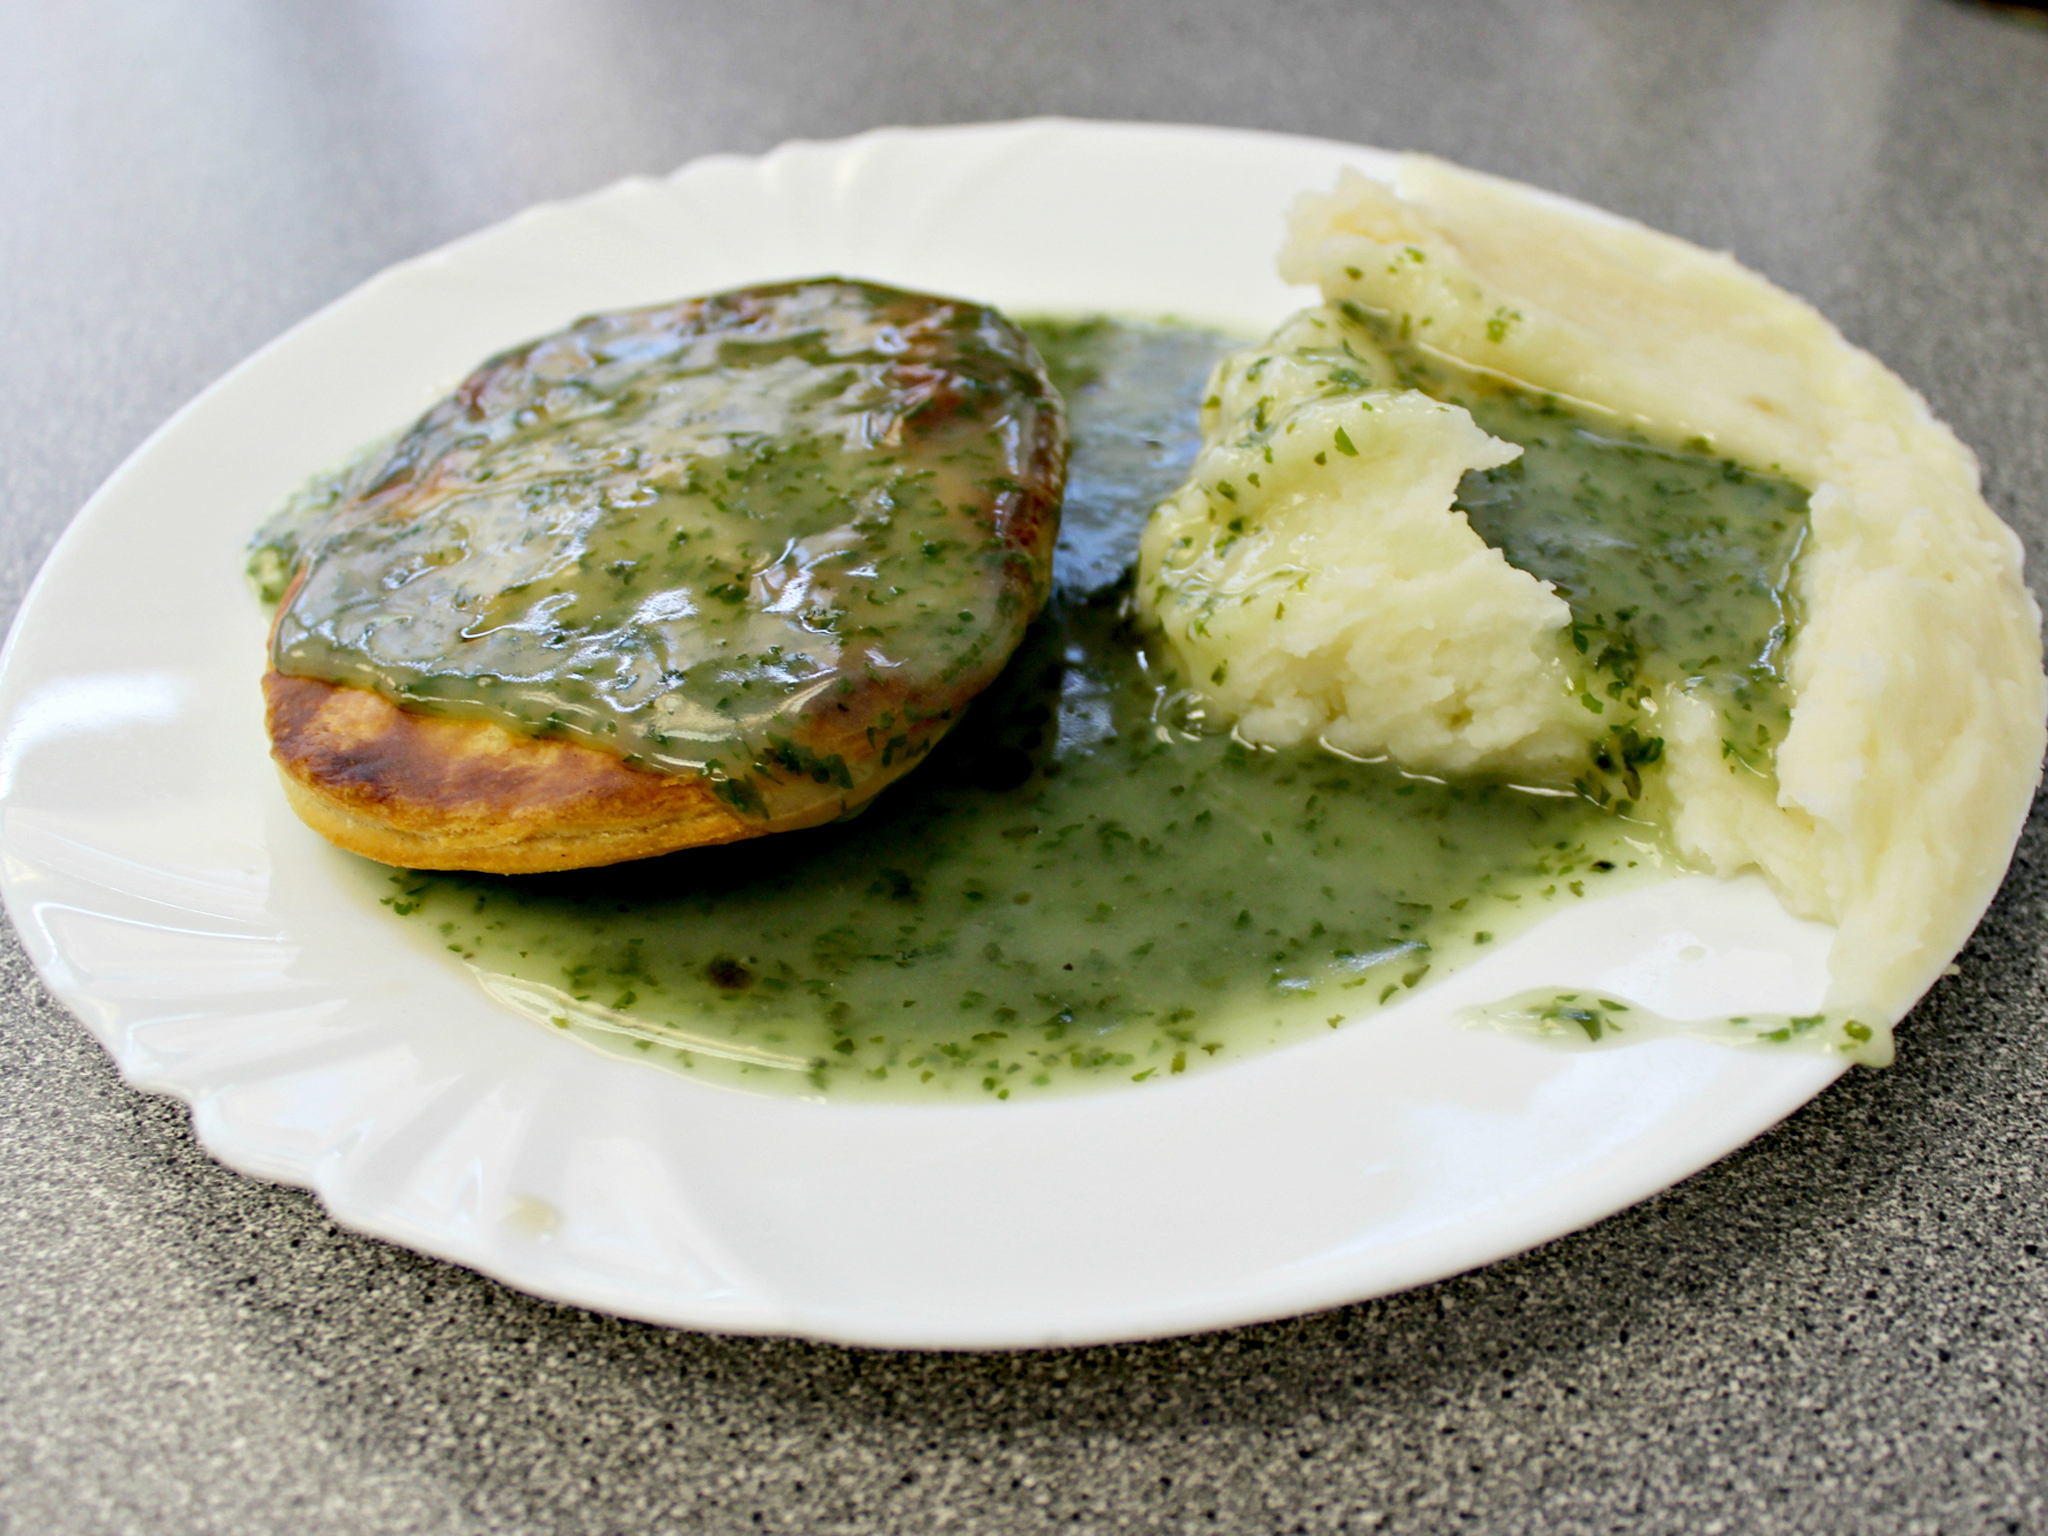 London's best pie & mash shops, Maureen's